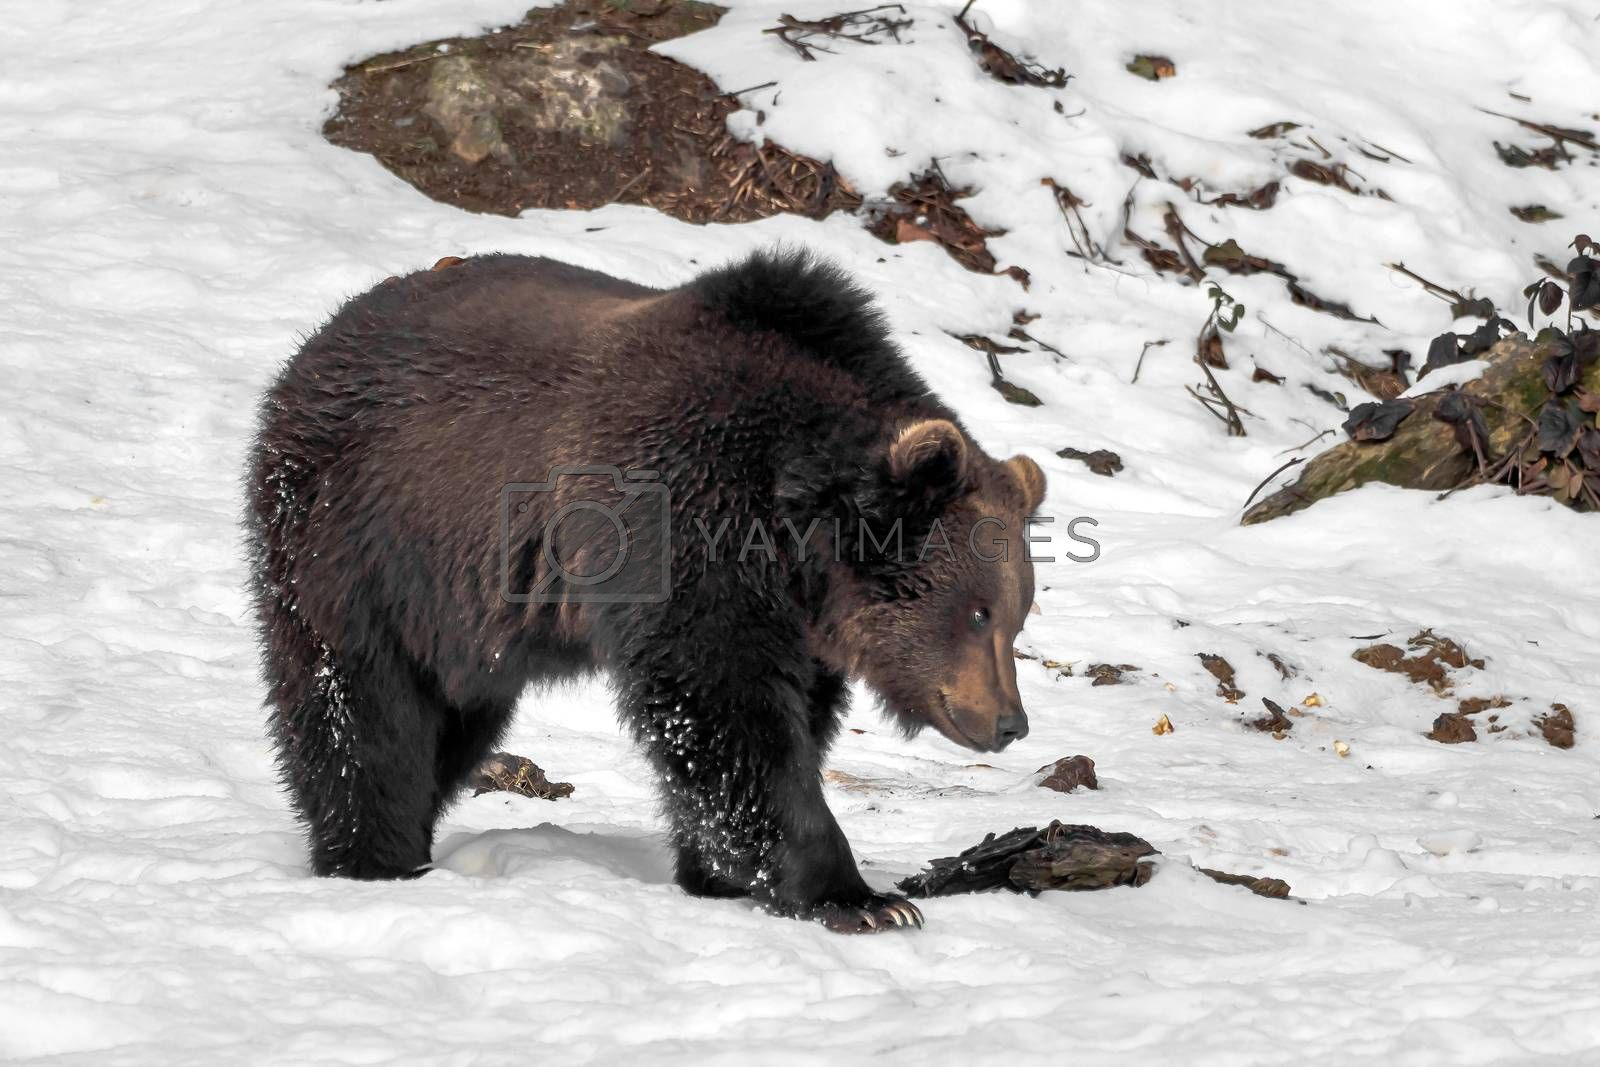 A big bear is running through the snow by Sandra Fotodesign